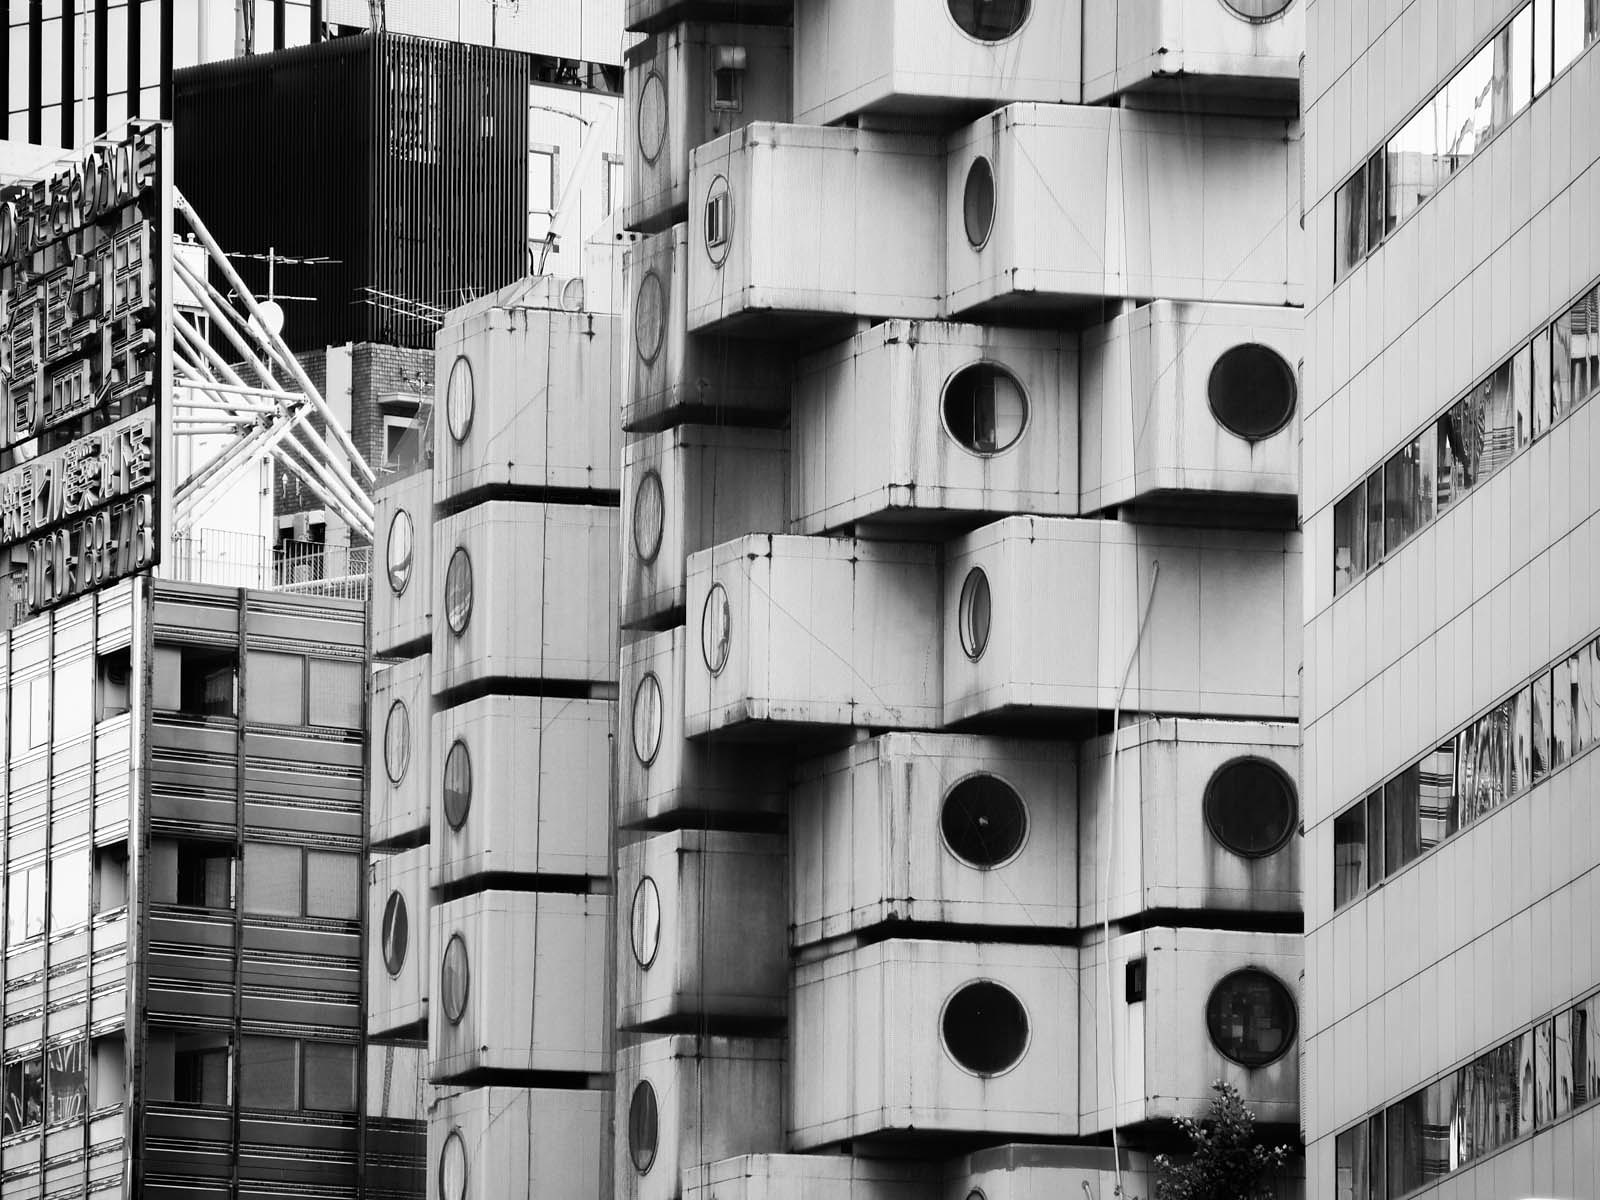 The Nakagin Capsule Tower, an iconic collection of stacked concrete cubes